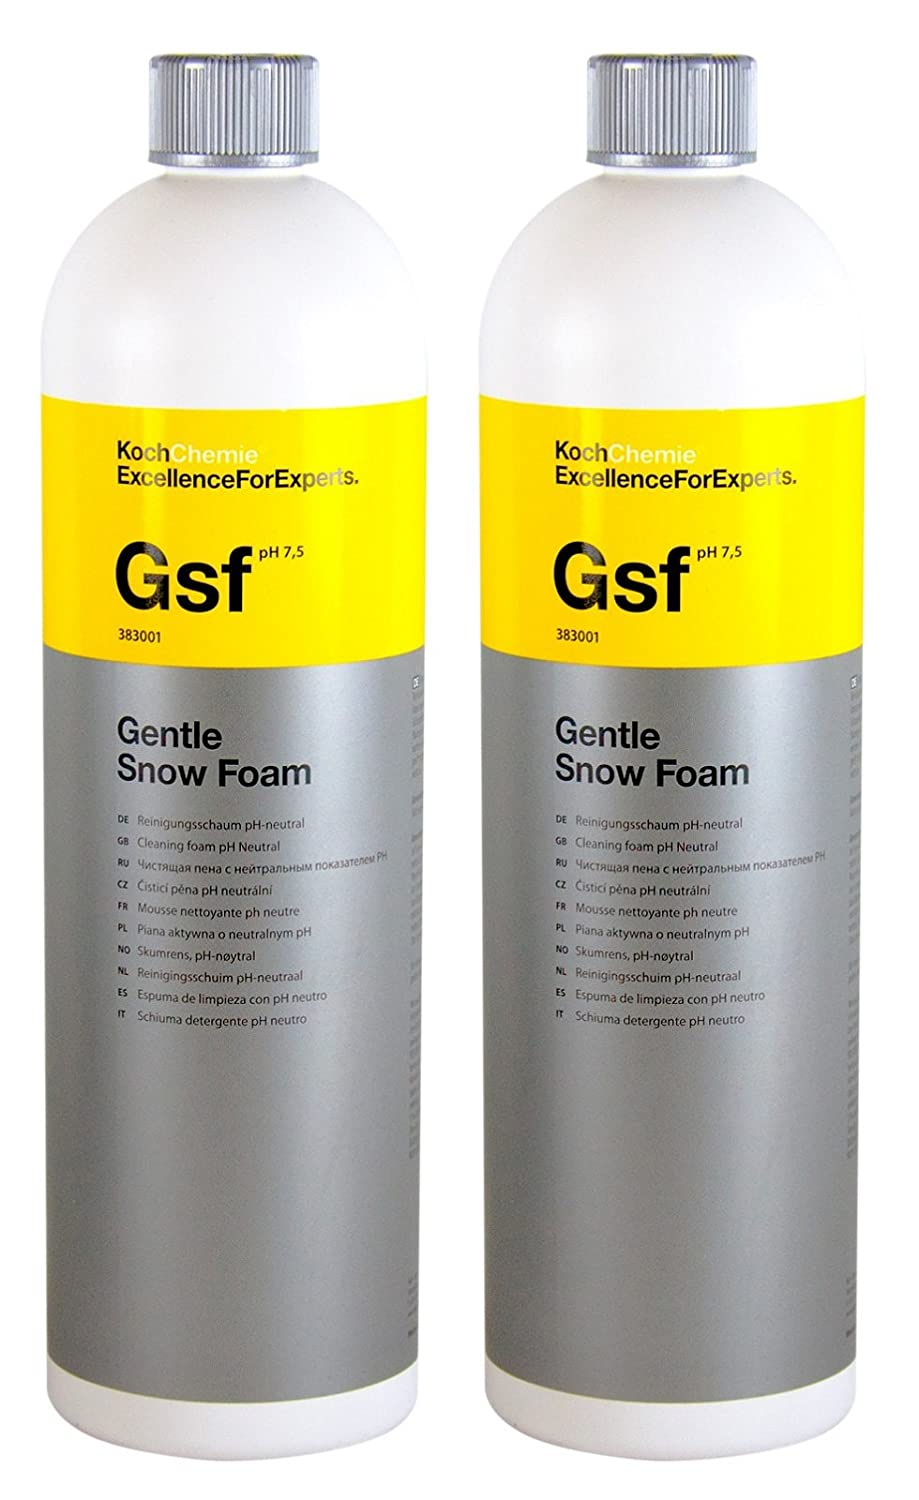 Koch Chemie 2x Gsf Gentle Snow Foam Reinigungsschaum pH-neutral 1 L Liter